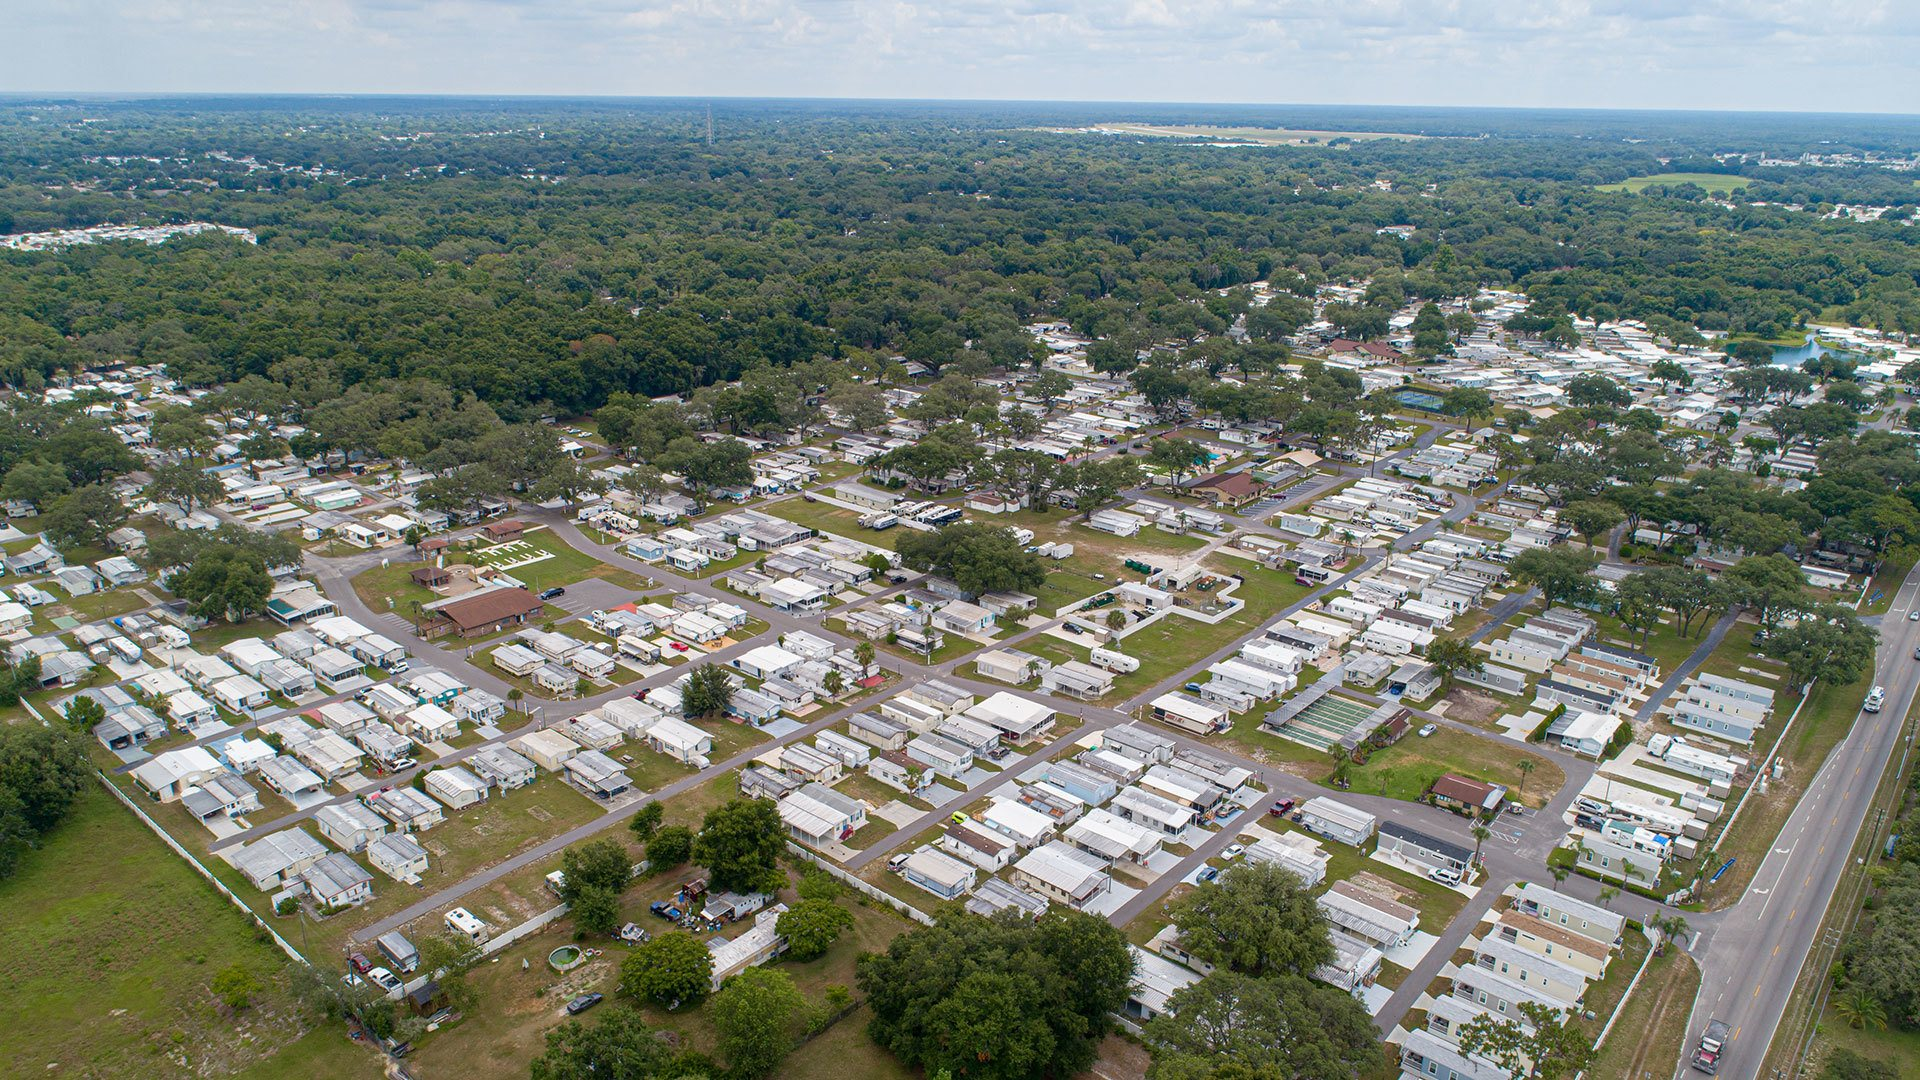 Settler's Rest RV Resort, Vacation Rentals and Manufactured Homes Community Aerial View in Zephyrhills, FL